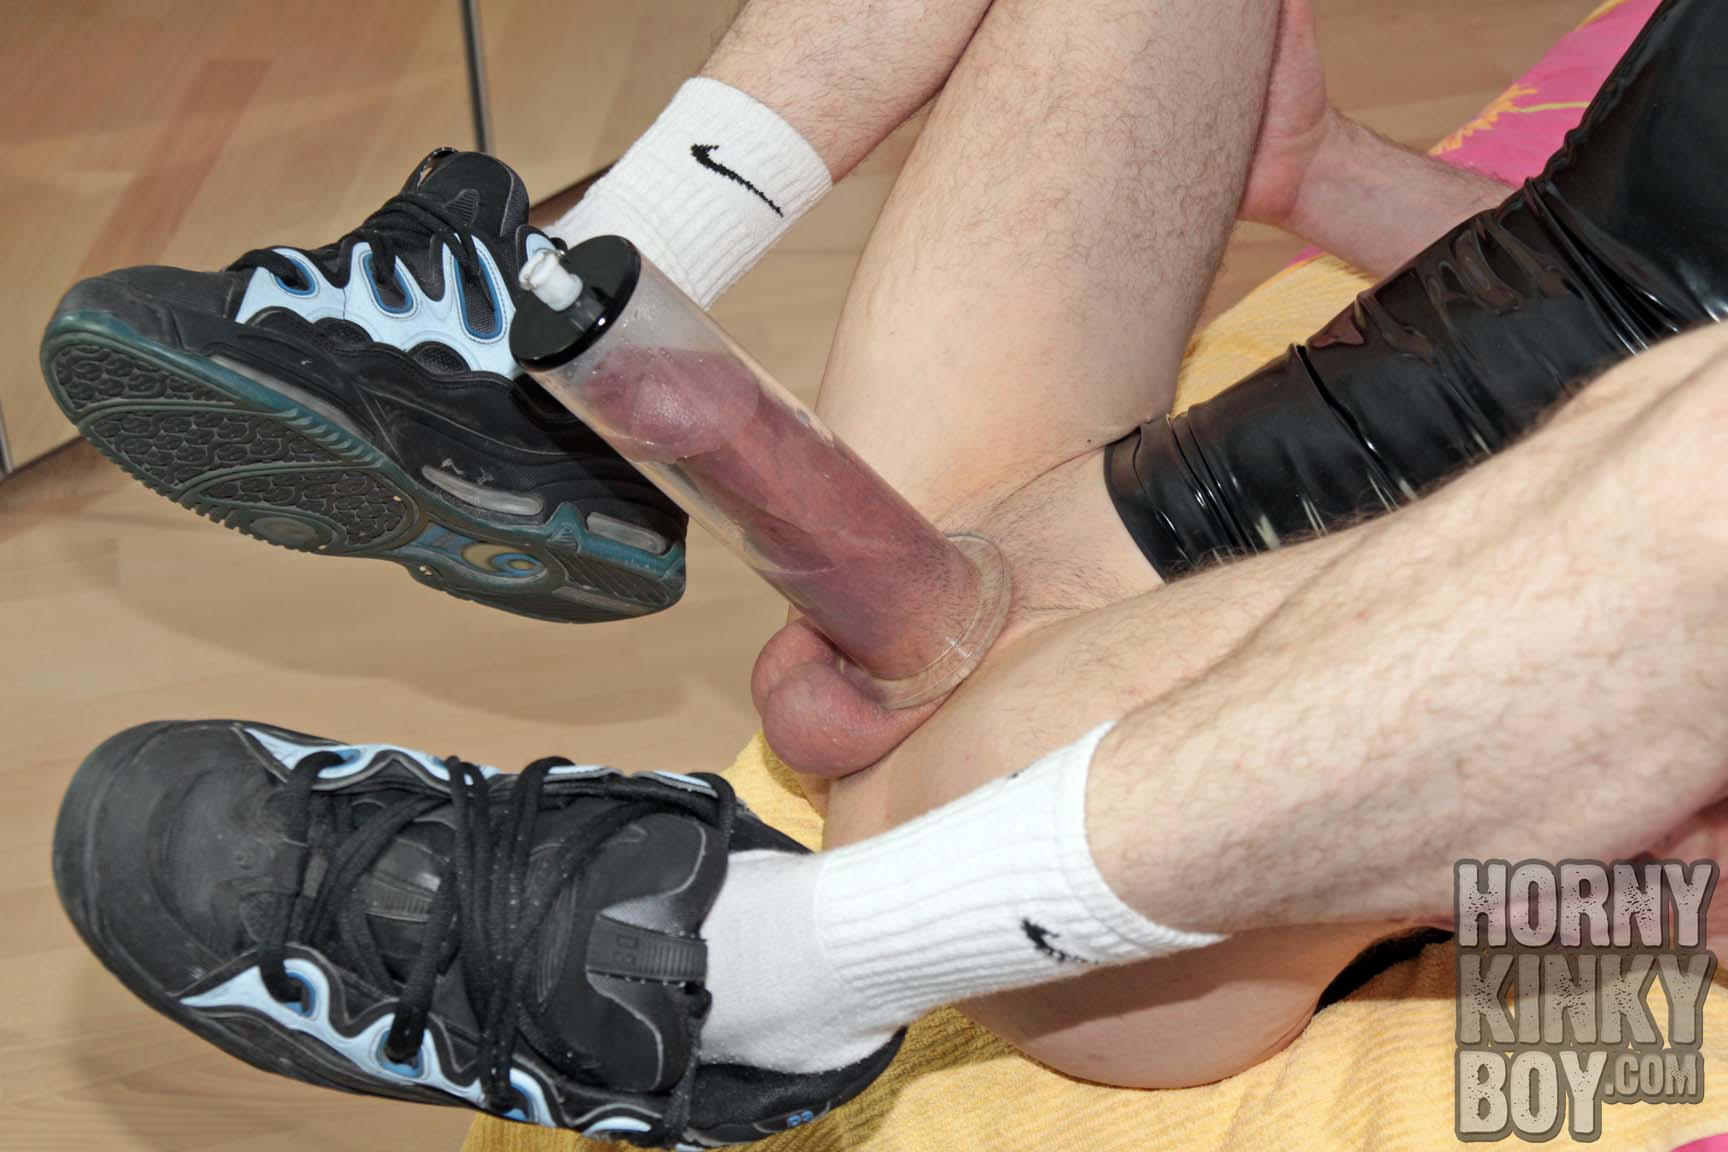 Vacuum Pumping In Rubber And Sneaks